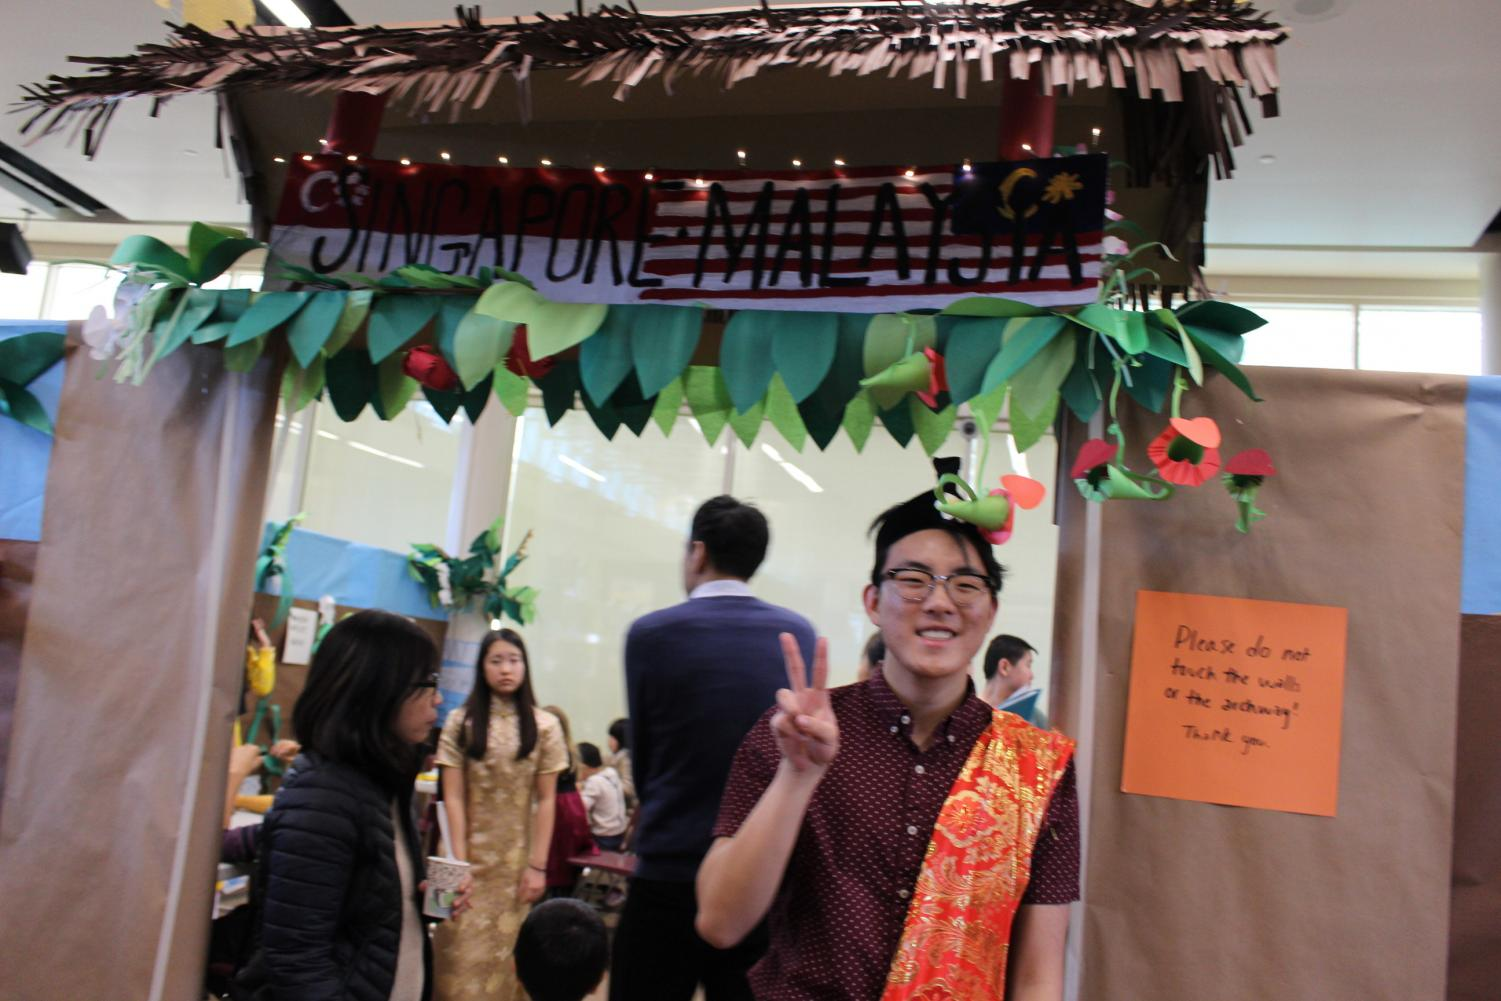 Dylan Chae '20, President of Diversity Council, posed by the entrance to the Singapore and Malaysian booths.  Chae is dressed in traditional Malay clothing.